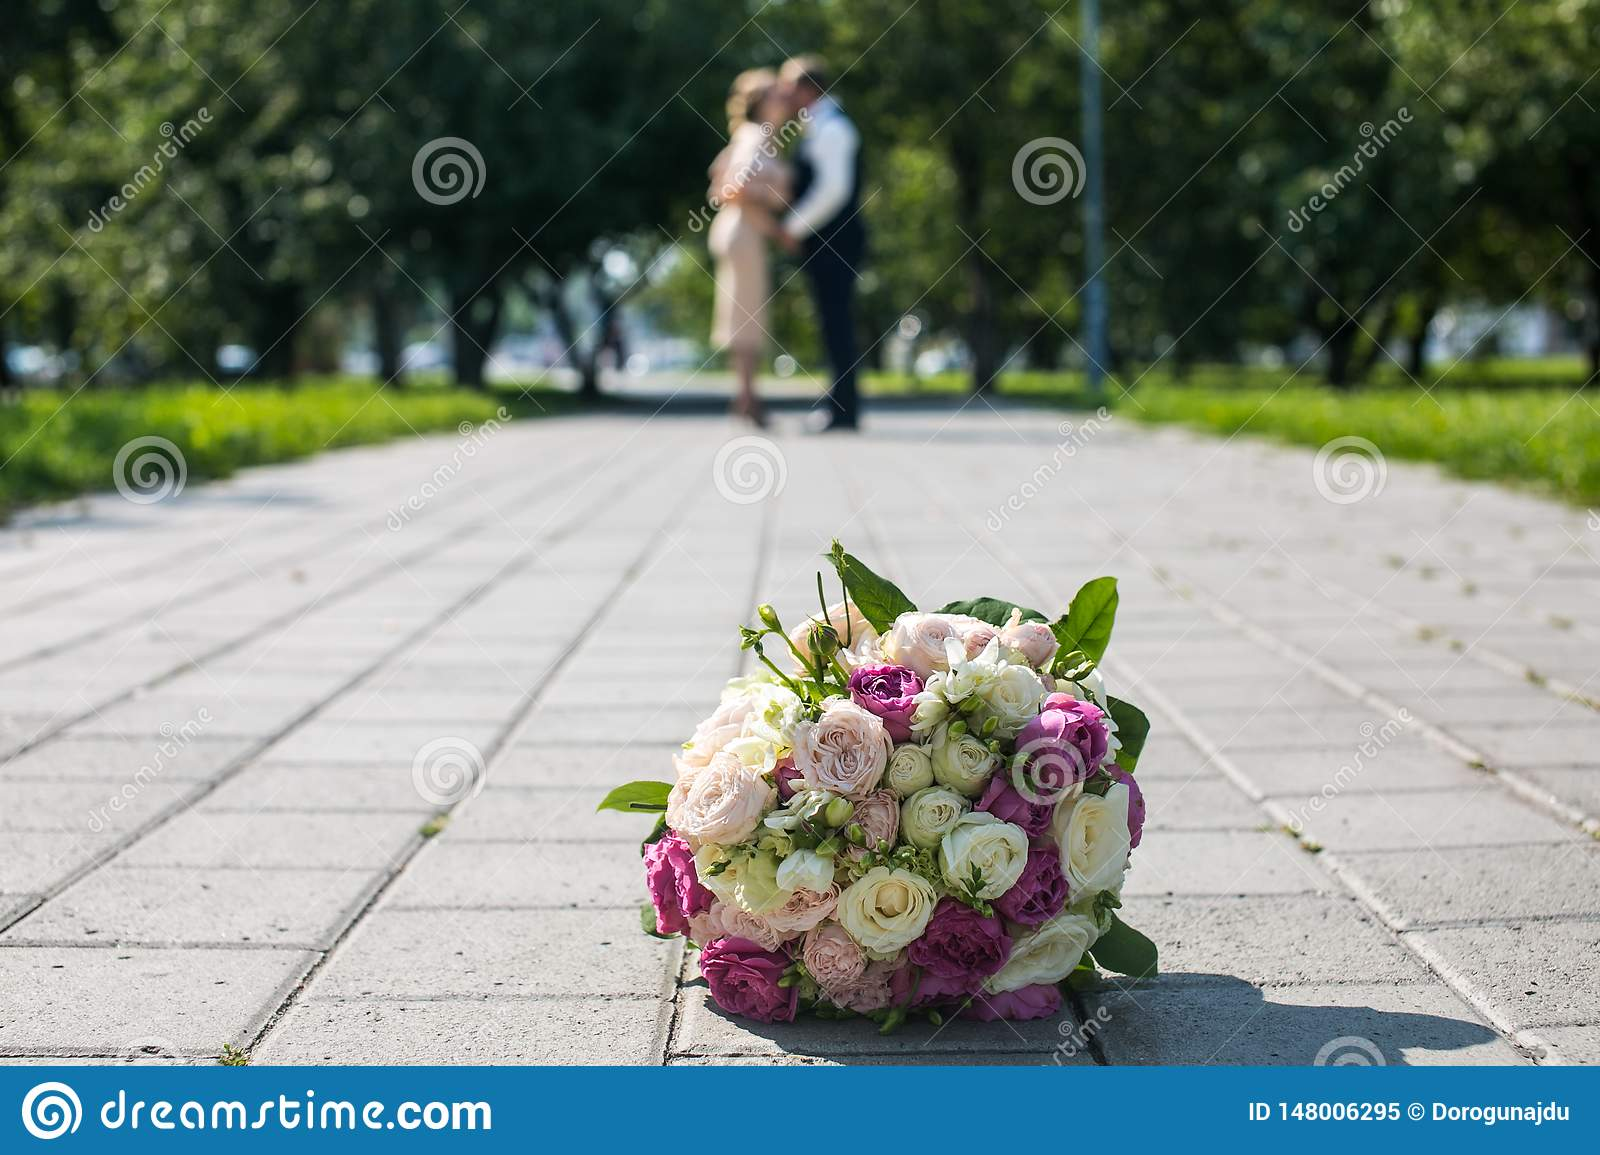 Wedding bouquet and the newlyweds in the park a beautiful wedding